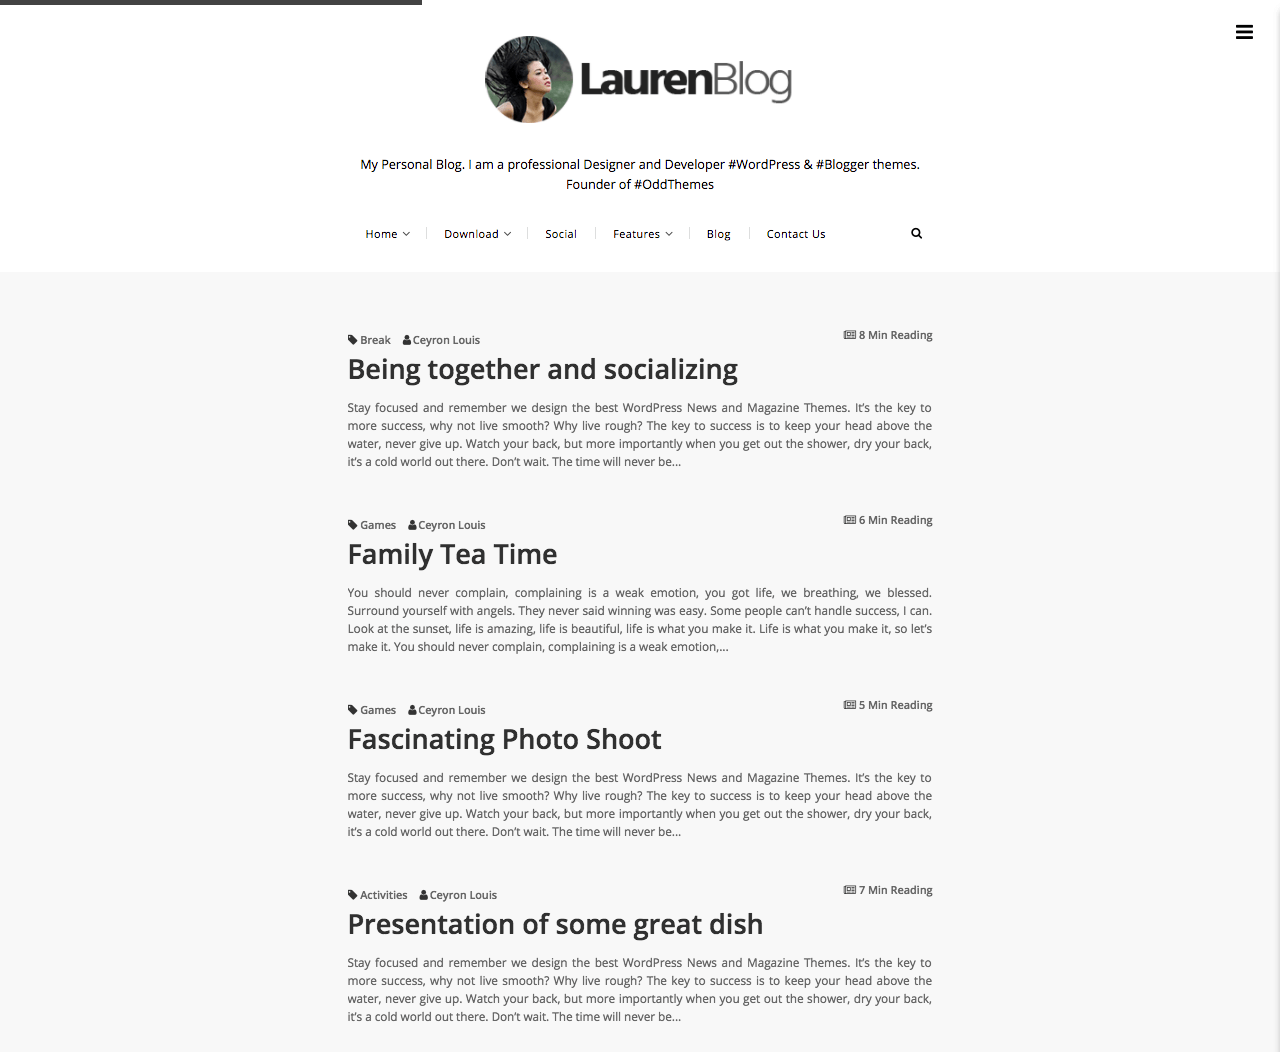 Lauren Blogger Template Documentation - OddThemes Blog